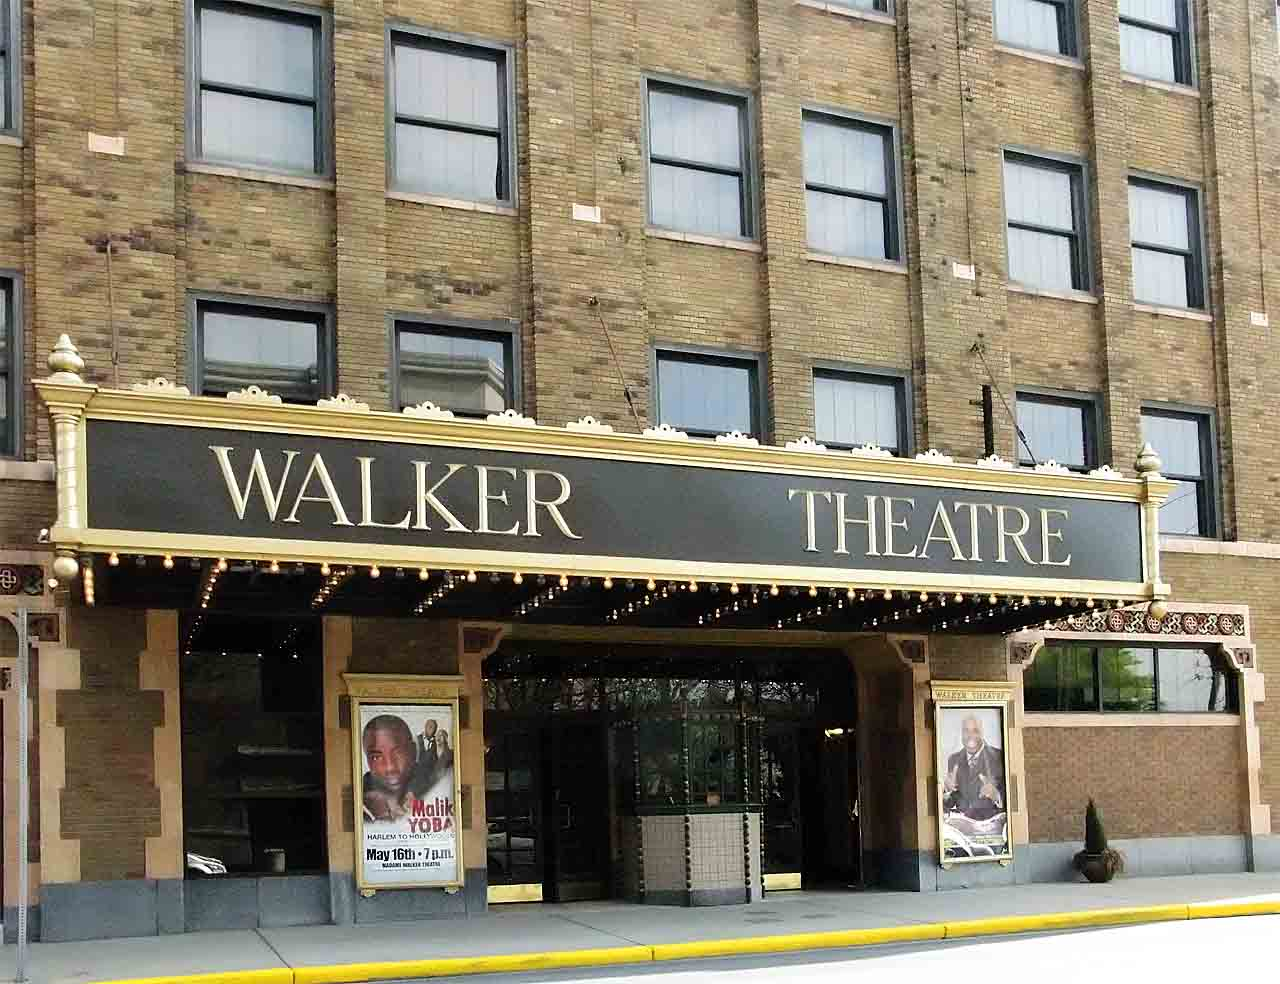 Main entrance of the Walker Theatre in Indianapolis, Indiana